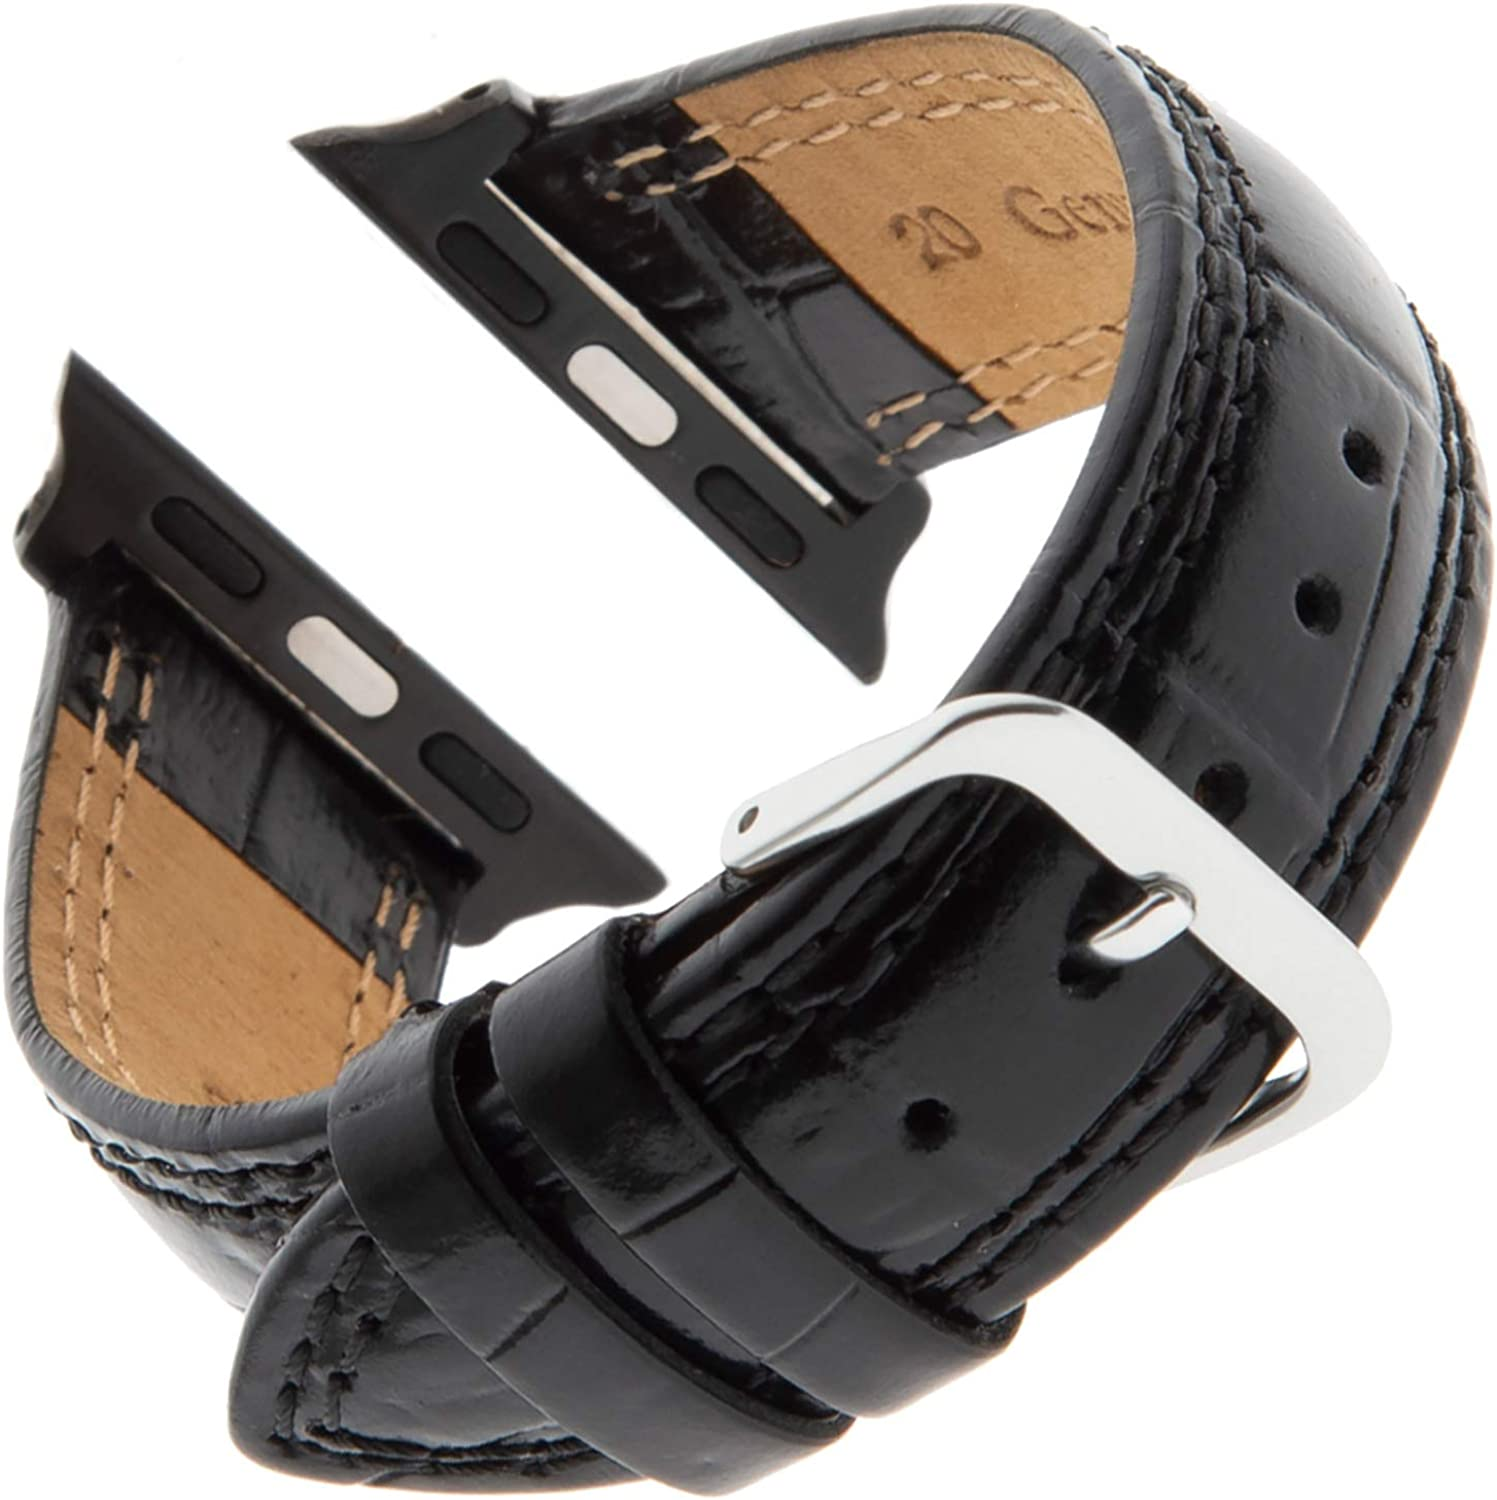 Gilden Gents Shiny Stitched Padded Gator-Grain Calfskin Watch Strap LS30-SMART, fits Apple Apple Watch in 38mm/40mm